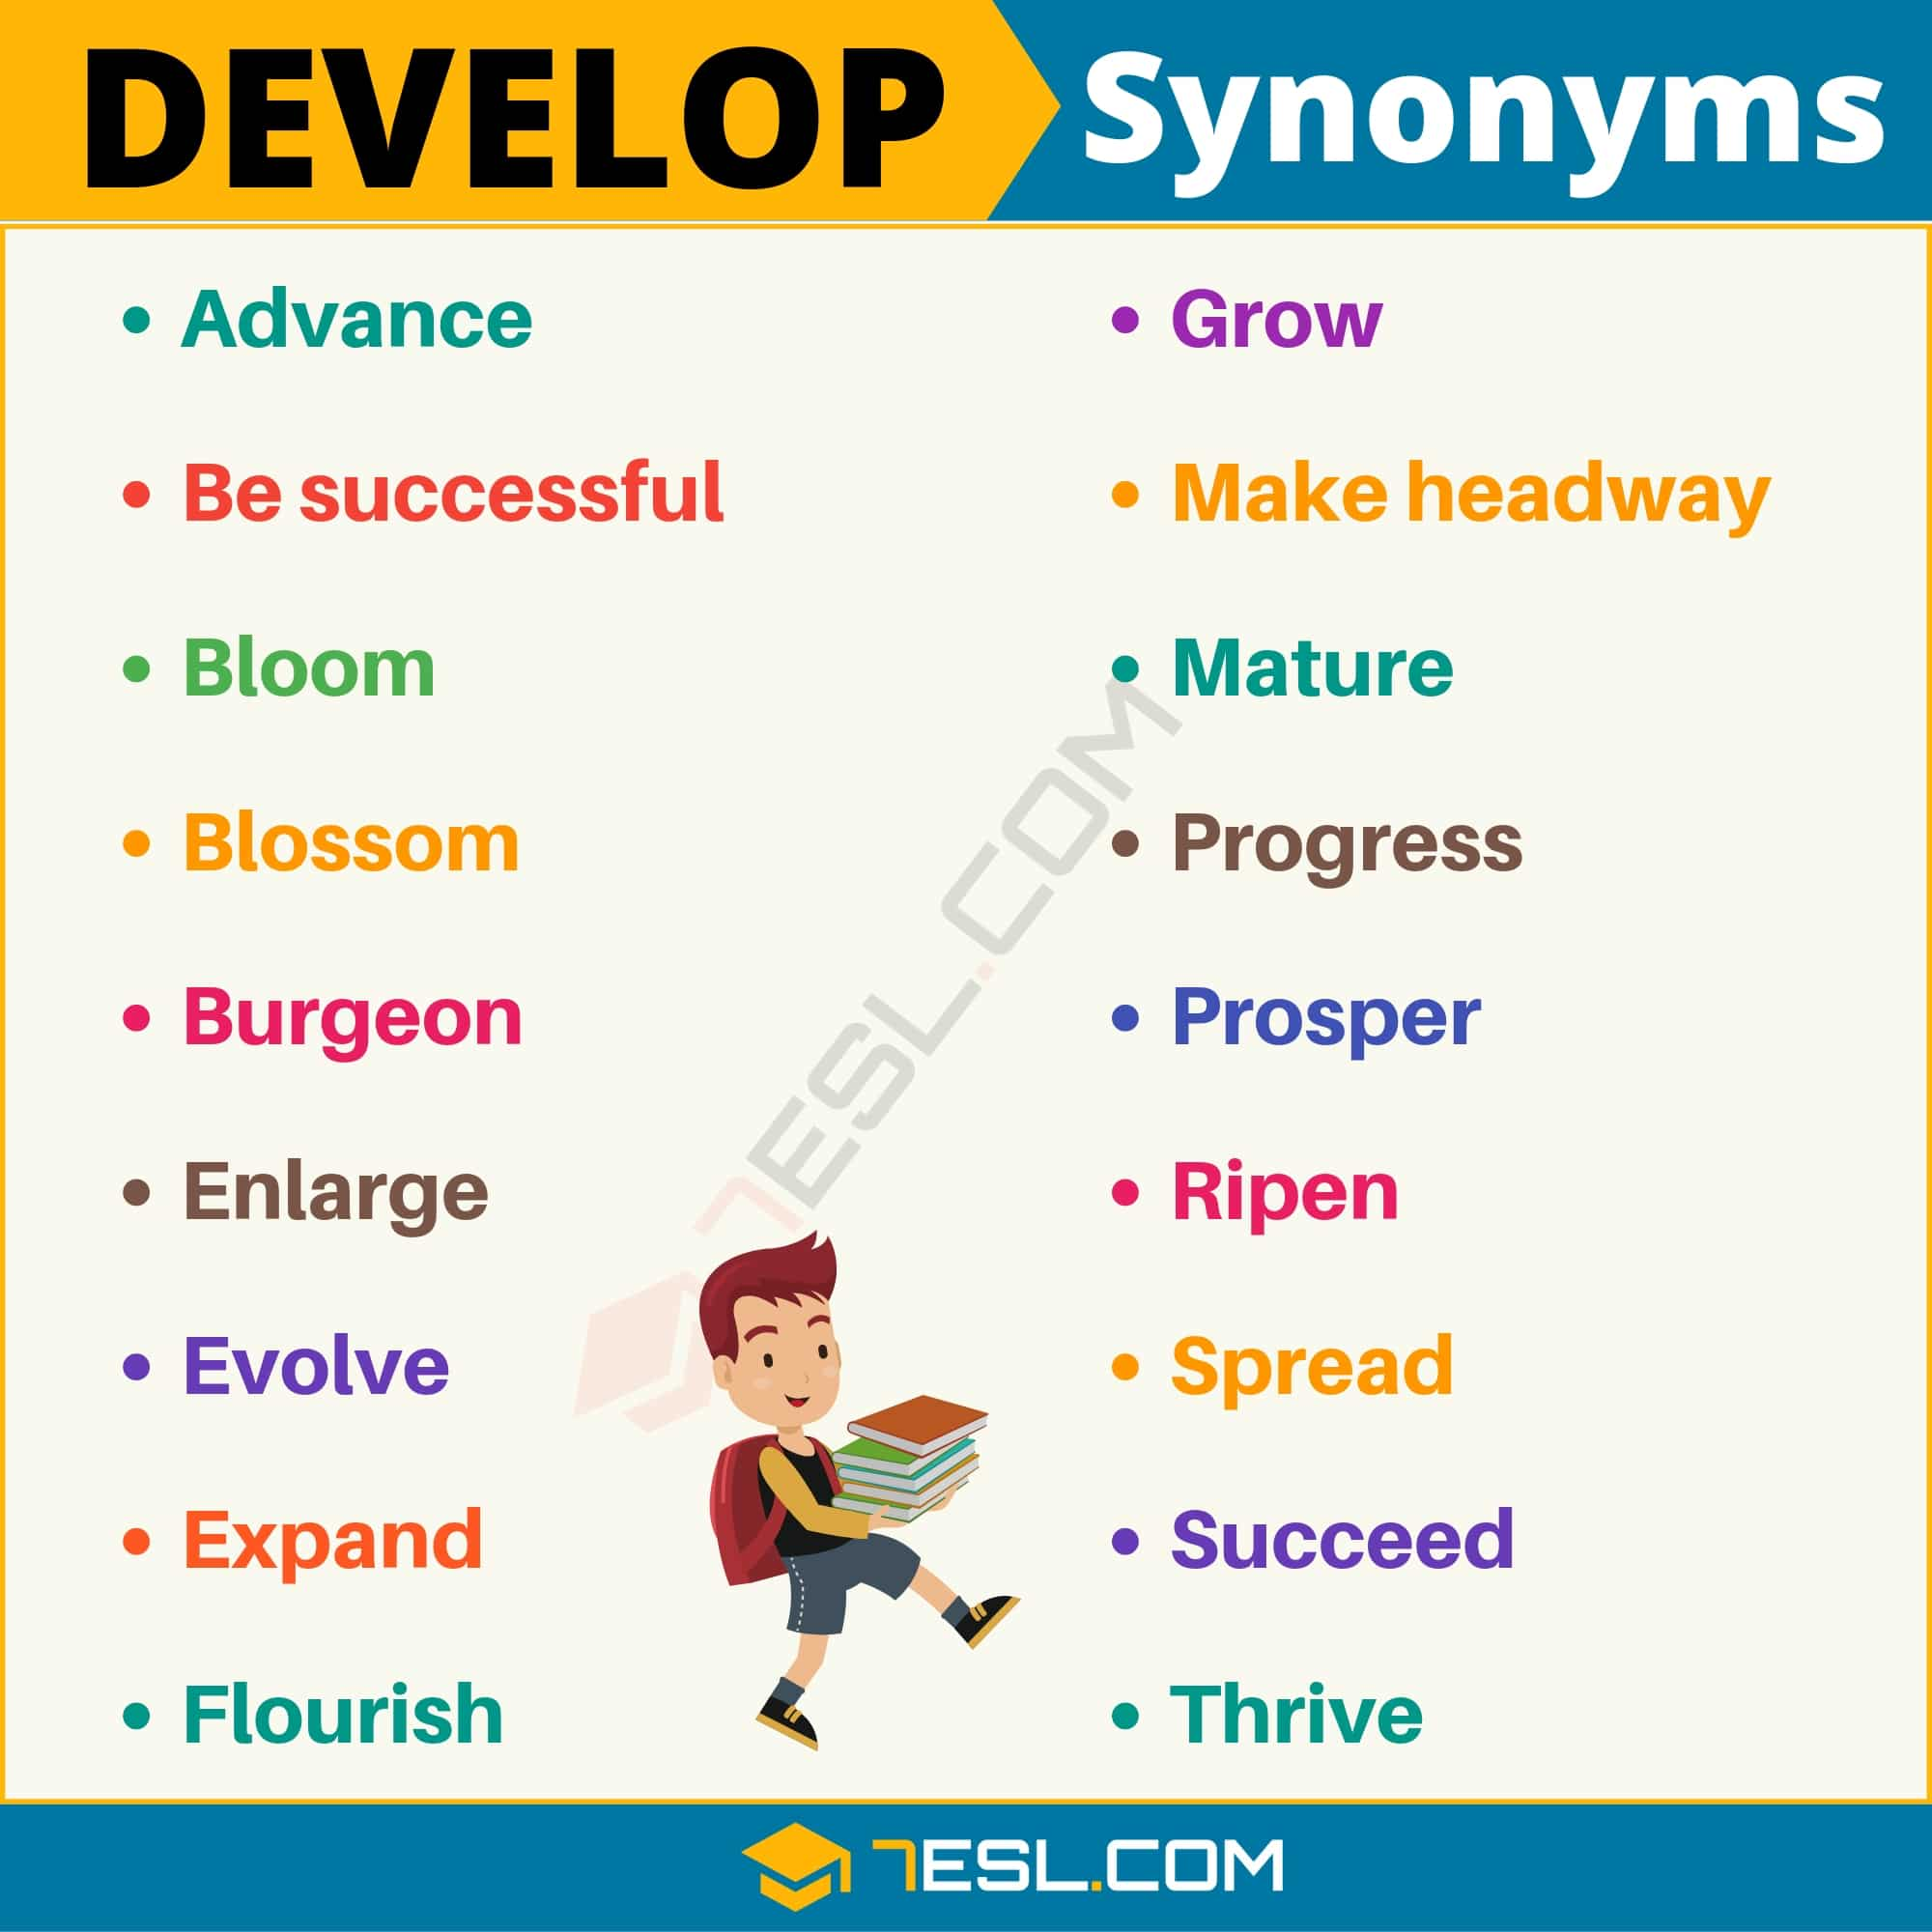 DEVELOP Synonym: List of 18 Synonyms for Develop with Useful Examples 2